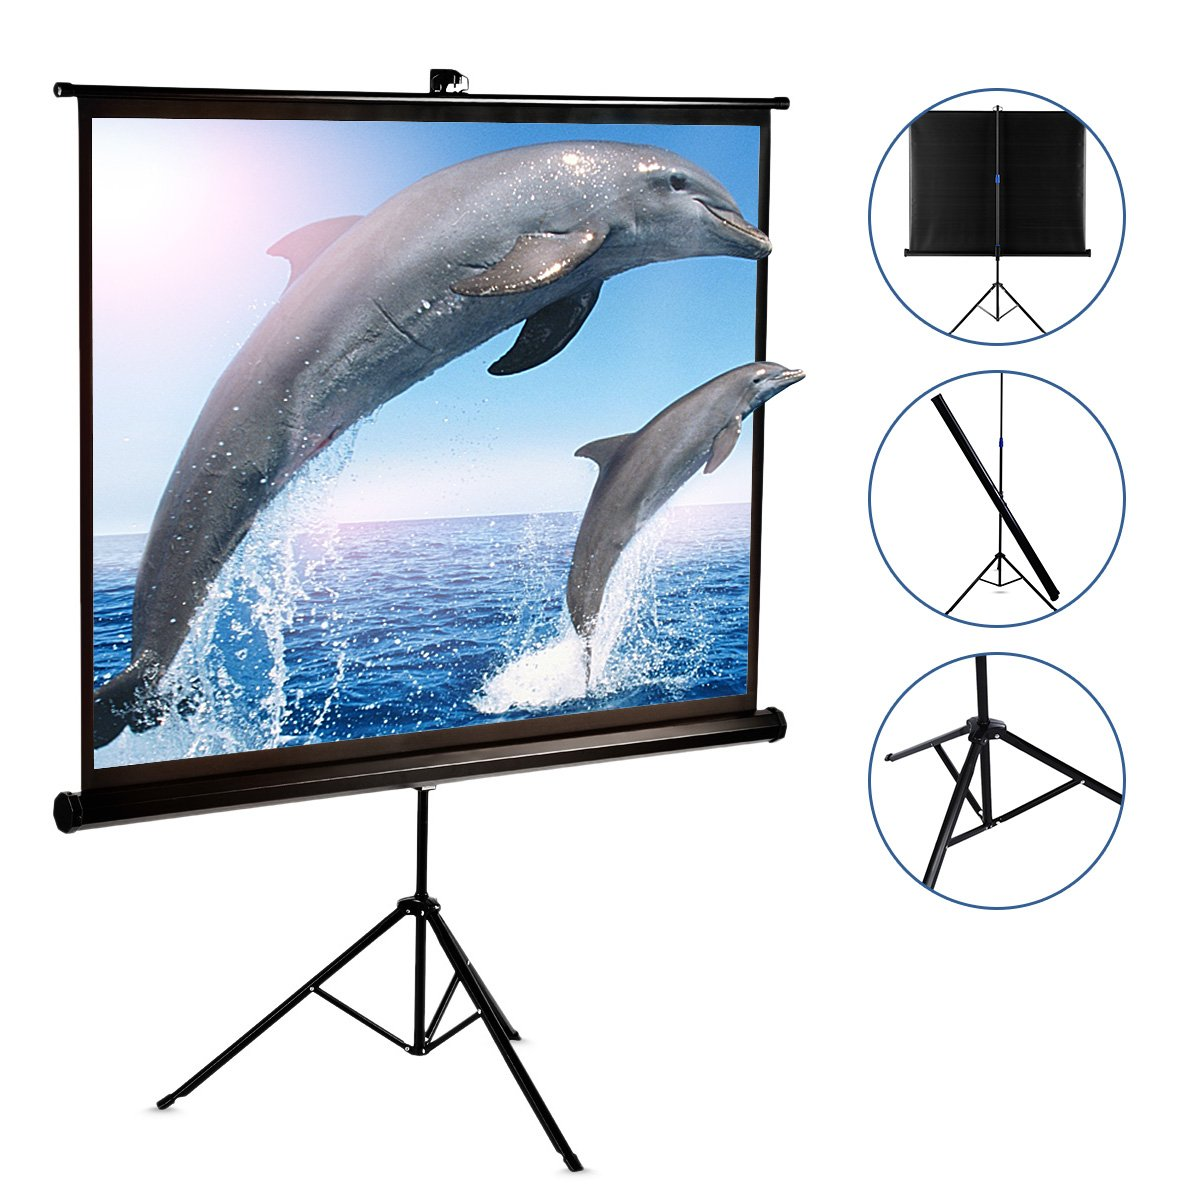 120 Inch Projector Screen with Foldable Stand Tripod, GBTIGER Diagonal HD 4:3 Pull Up Portable Indoor and Outdoor PVC Movie Screen with Wrinkle-Free Design 160° Viewing Angle by GBTIGER